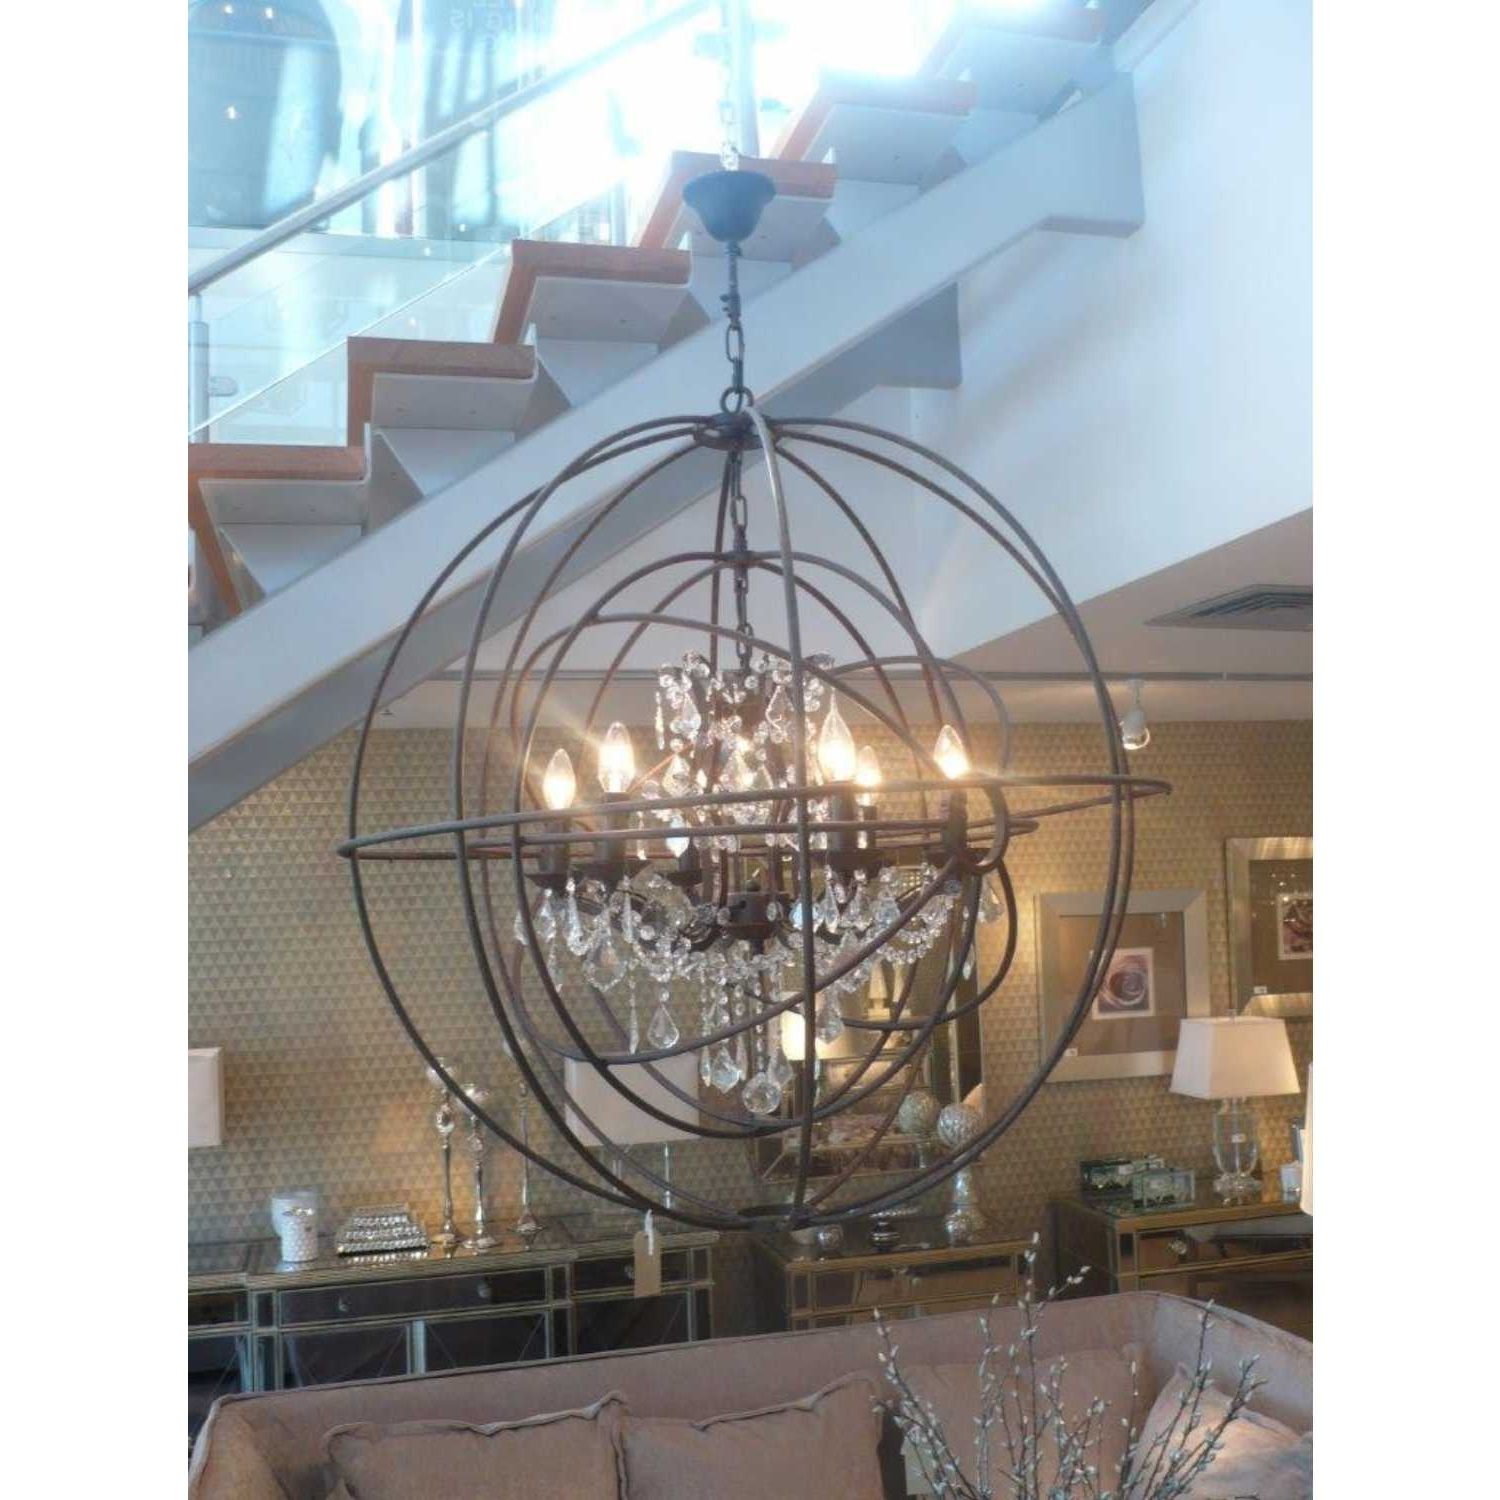 Metal Sphere Chandelier Round Ceiling Light With Glass Crystals Pertaining To Recent Metal Sphere Chandelier (View 6 of 20)